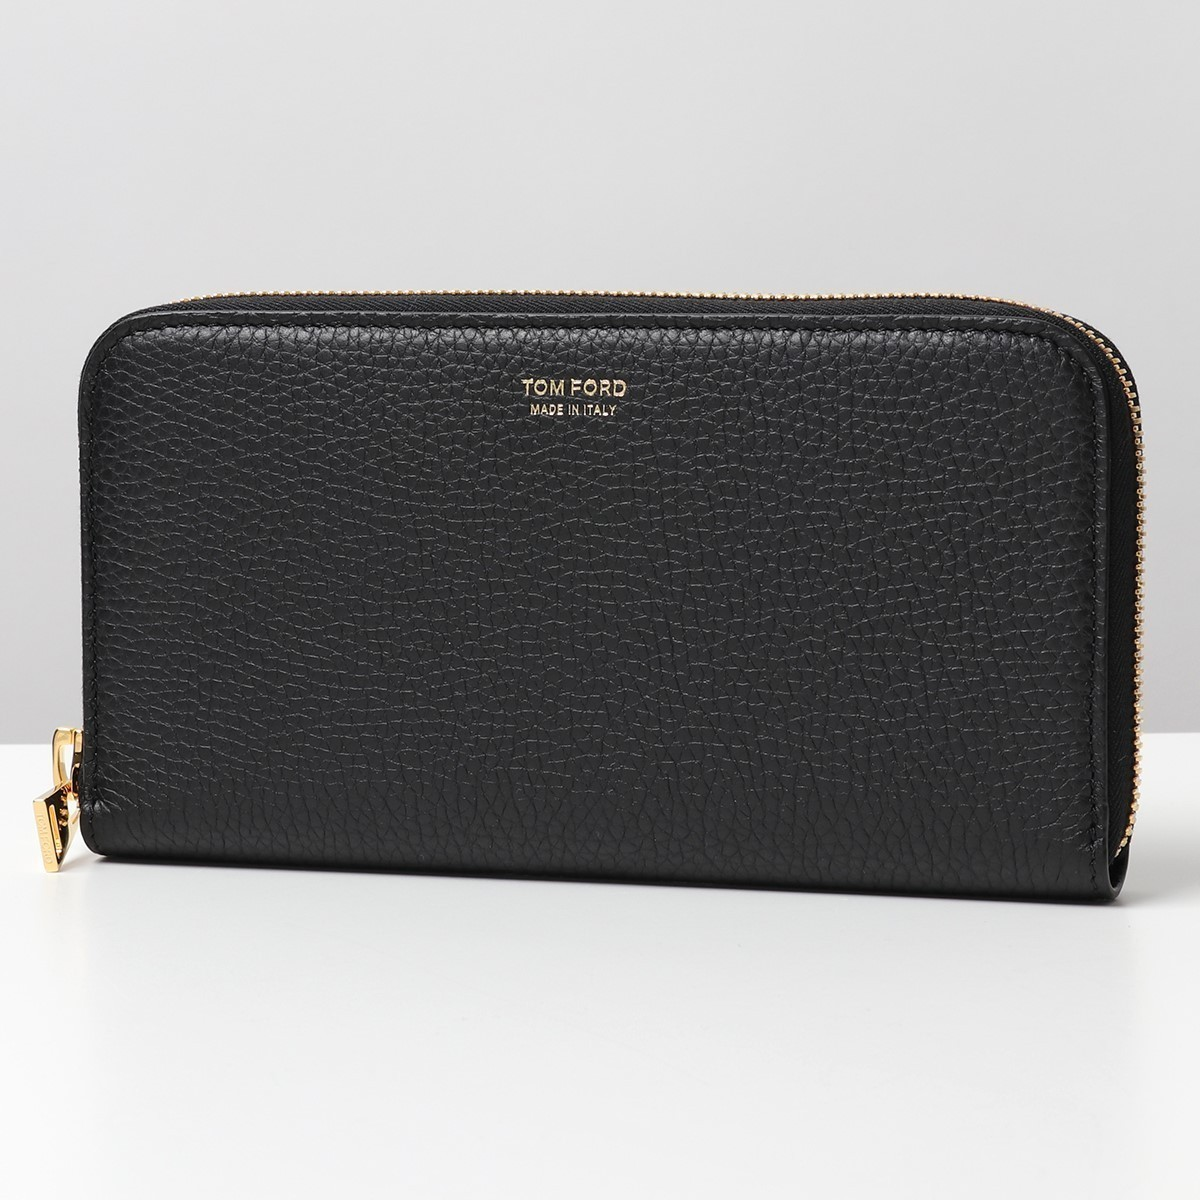 TOM FORD ラウンドファスナー長財布 Y0241T CP9 (TOM FORD/折りたたみ財布) Y0241T CP9